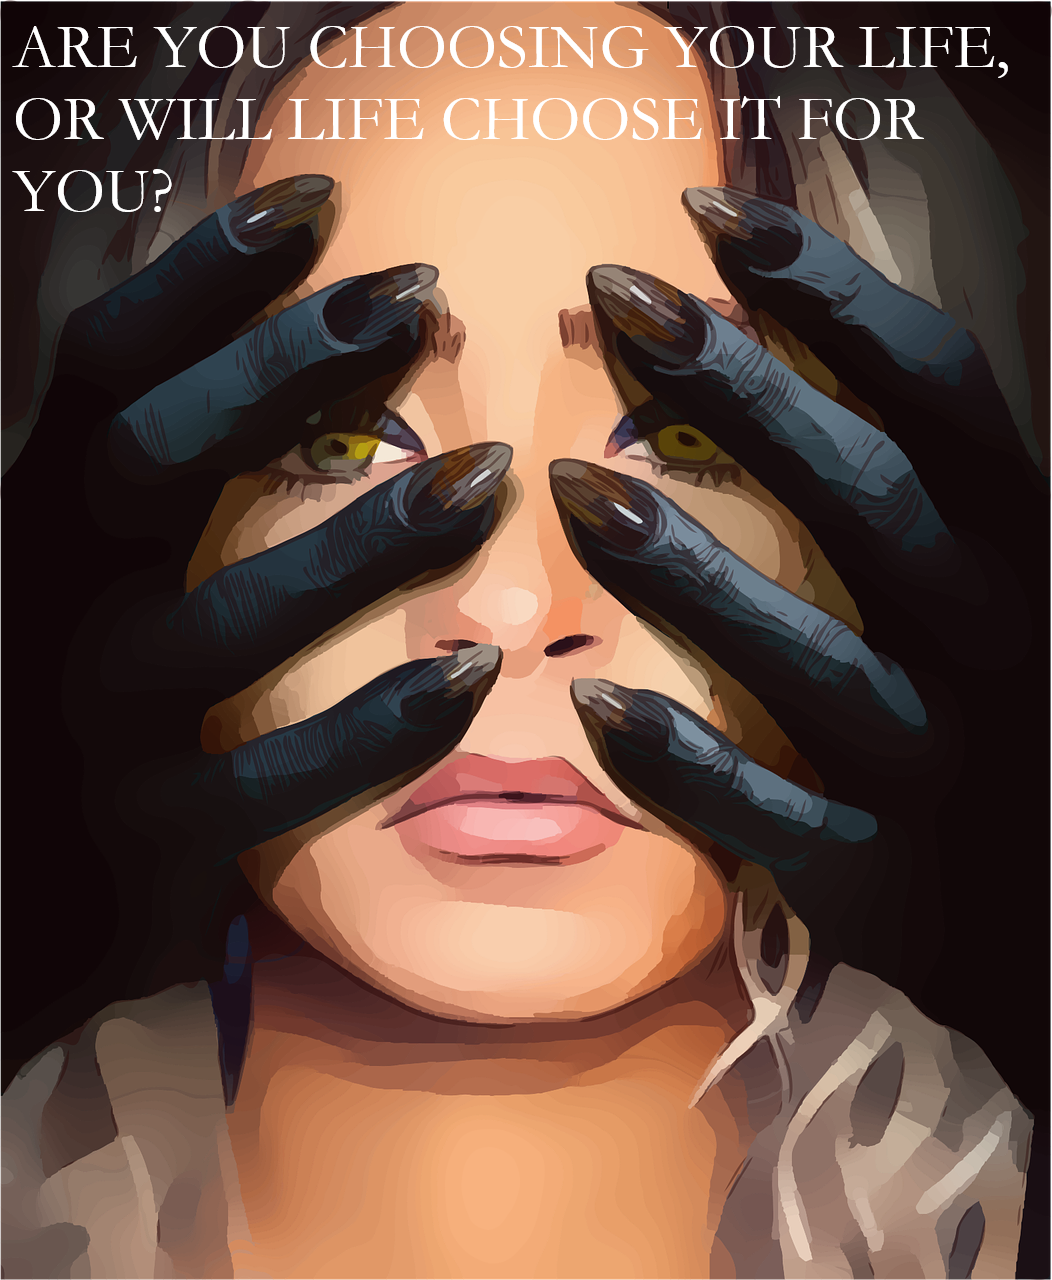 Are YOU choosing your life, or will life choose it for you?